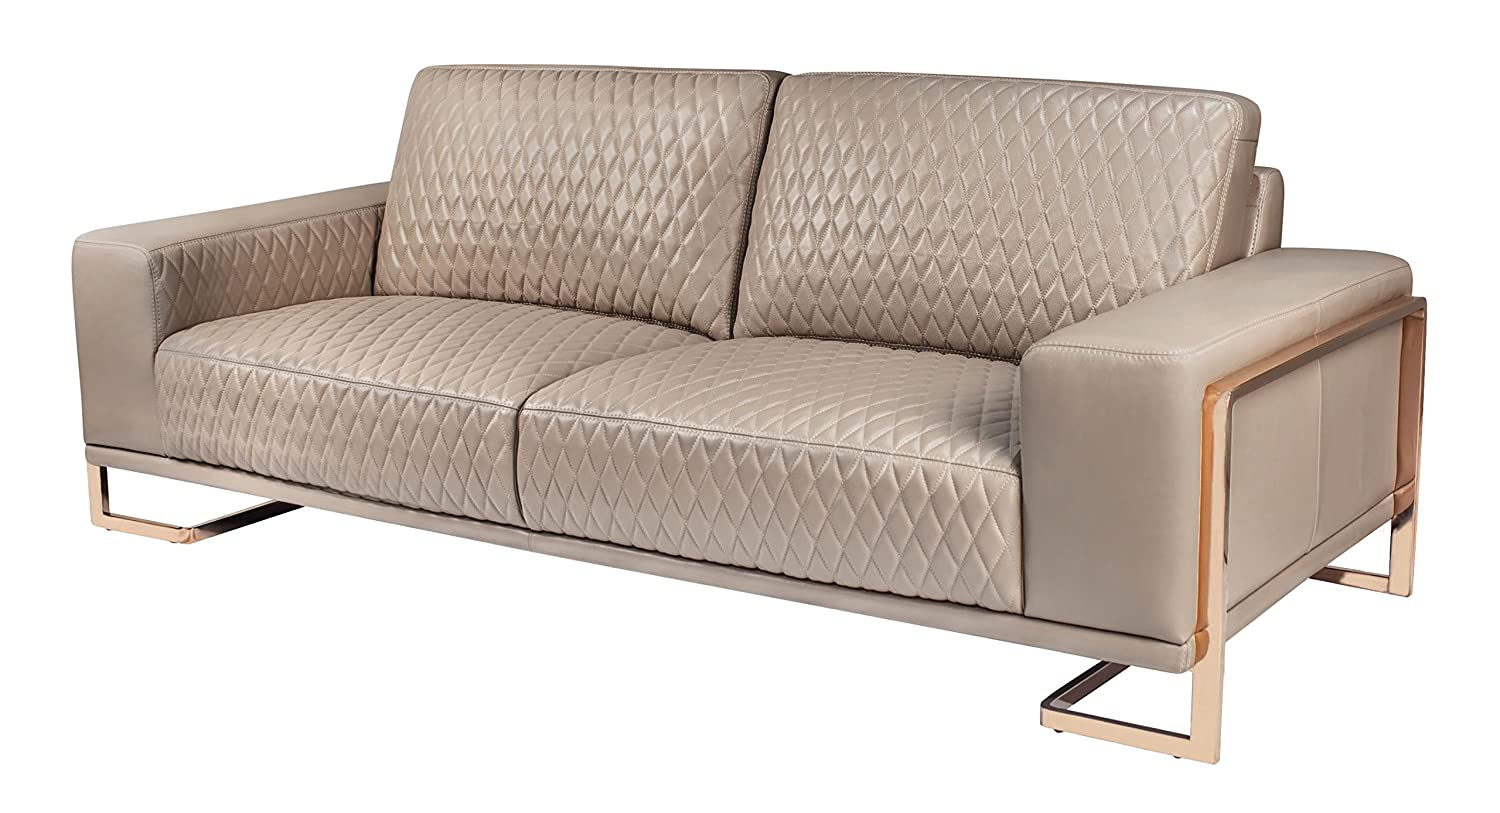 Amazing Amazon Com Michael Amini Gianna Leather Standard Sofa Pabps2019 Chair Design Images Pabps2019Com